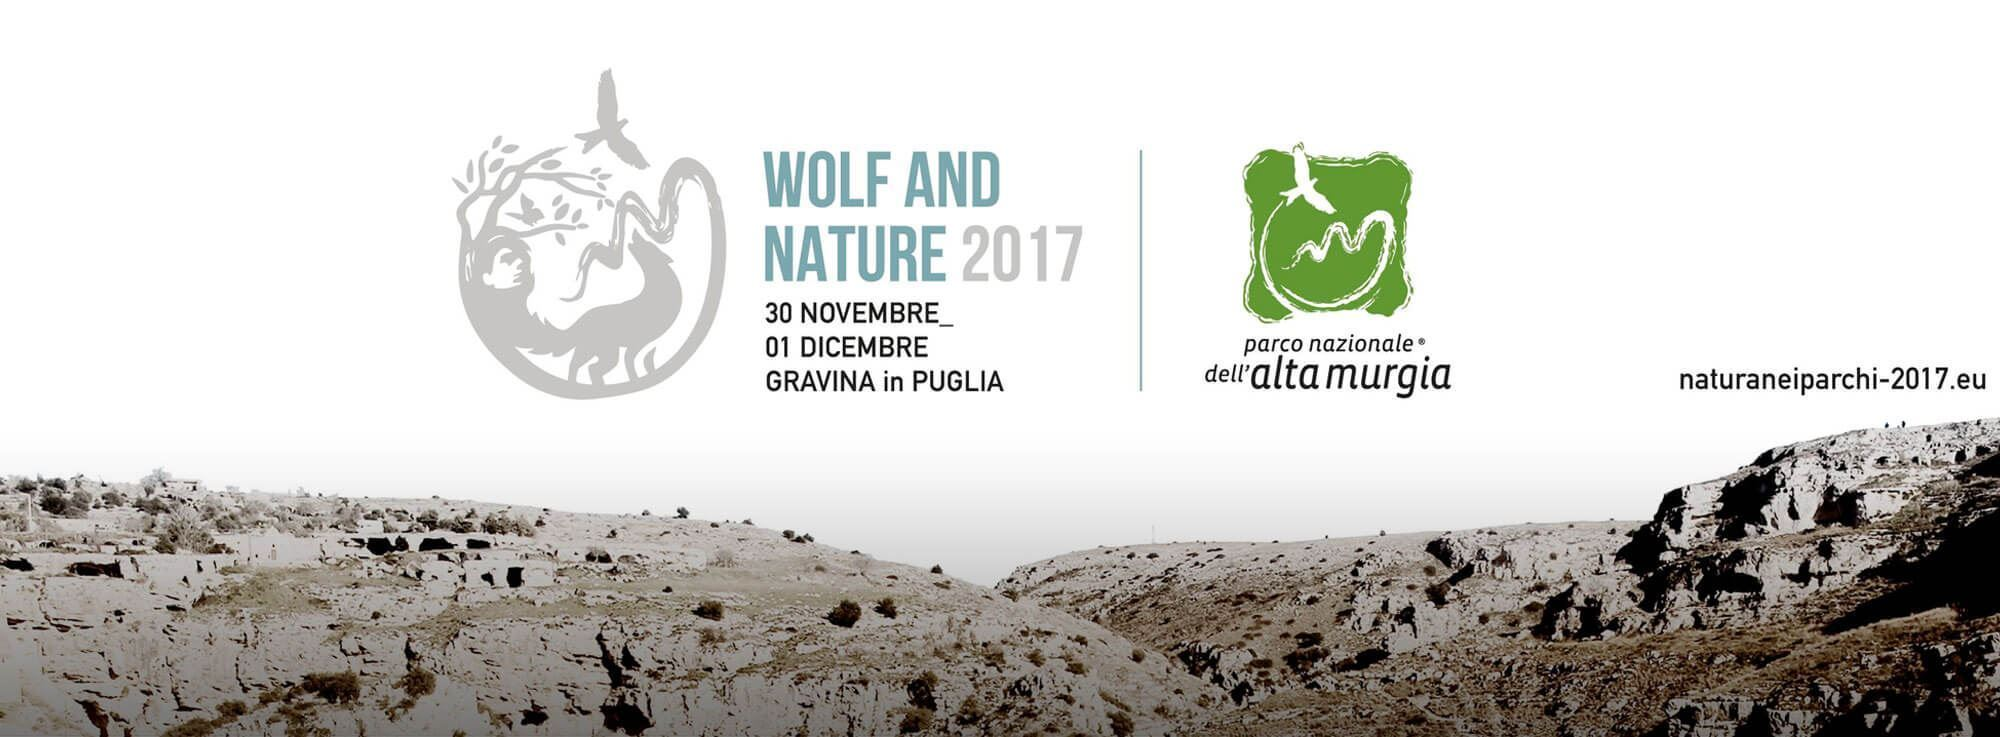 Gravina in Puglia: Wolf and Nature 2017